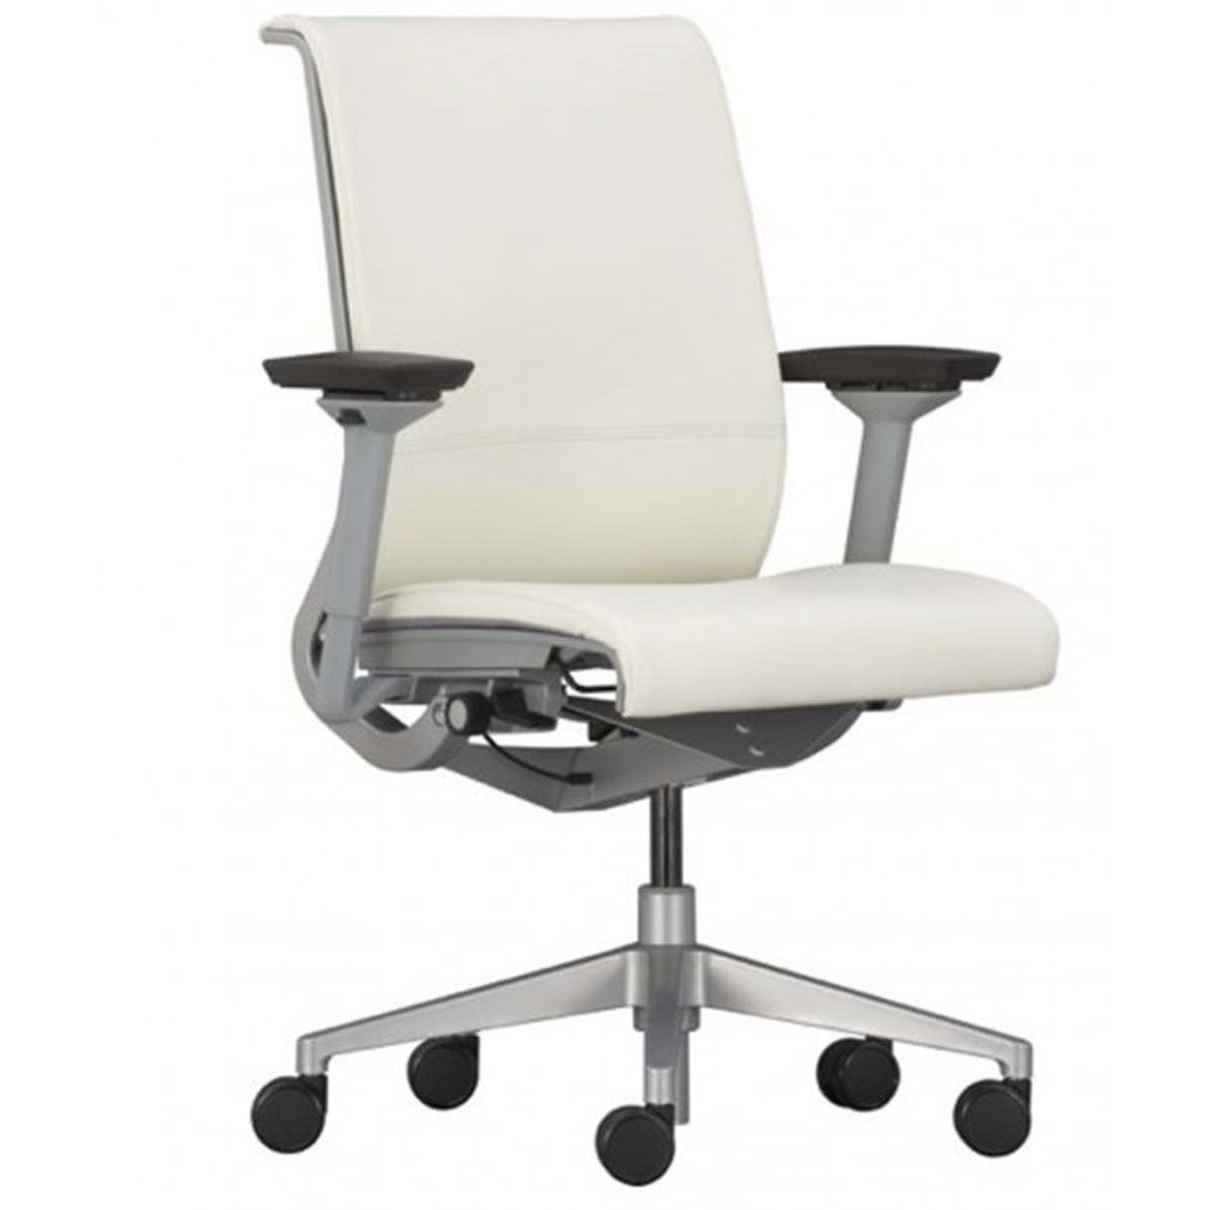 desk chairs white tall chair for standing leather office furniture